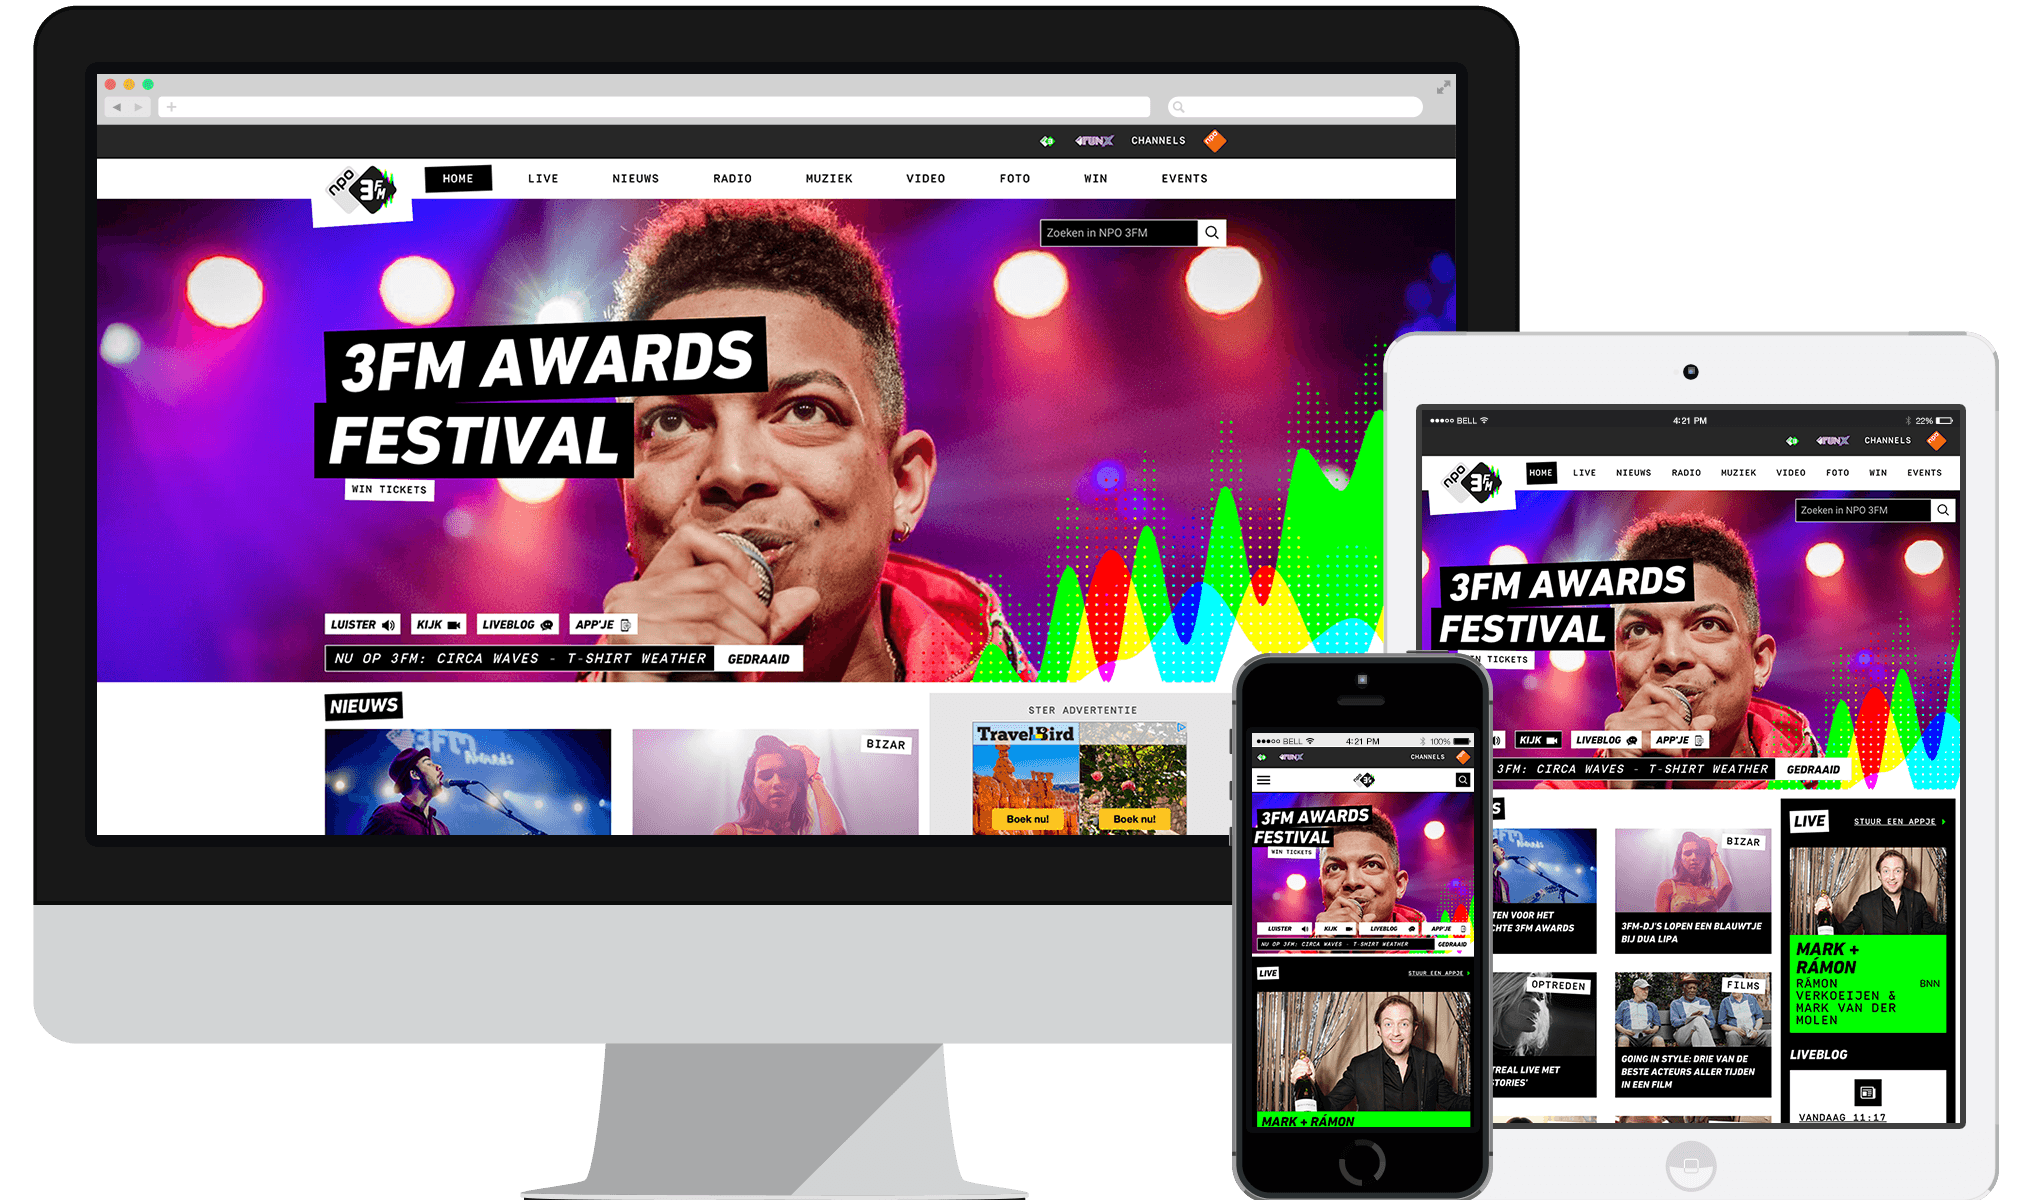 New Radio 3FM website